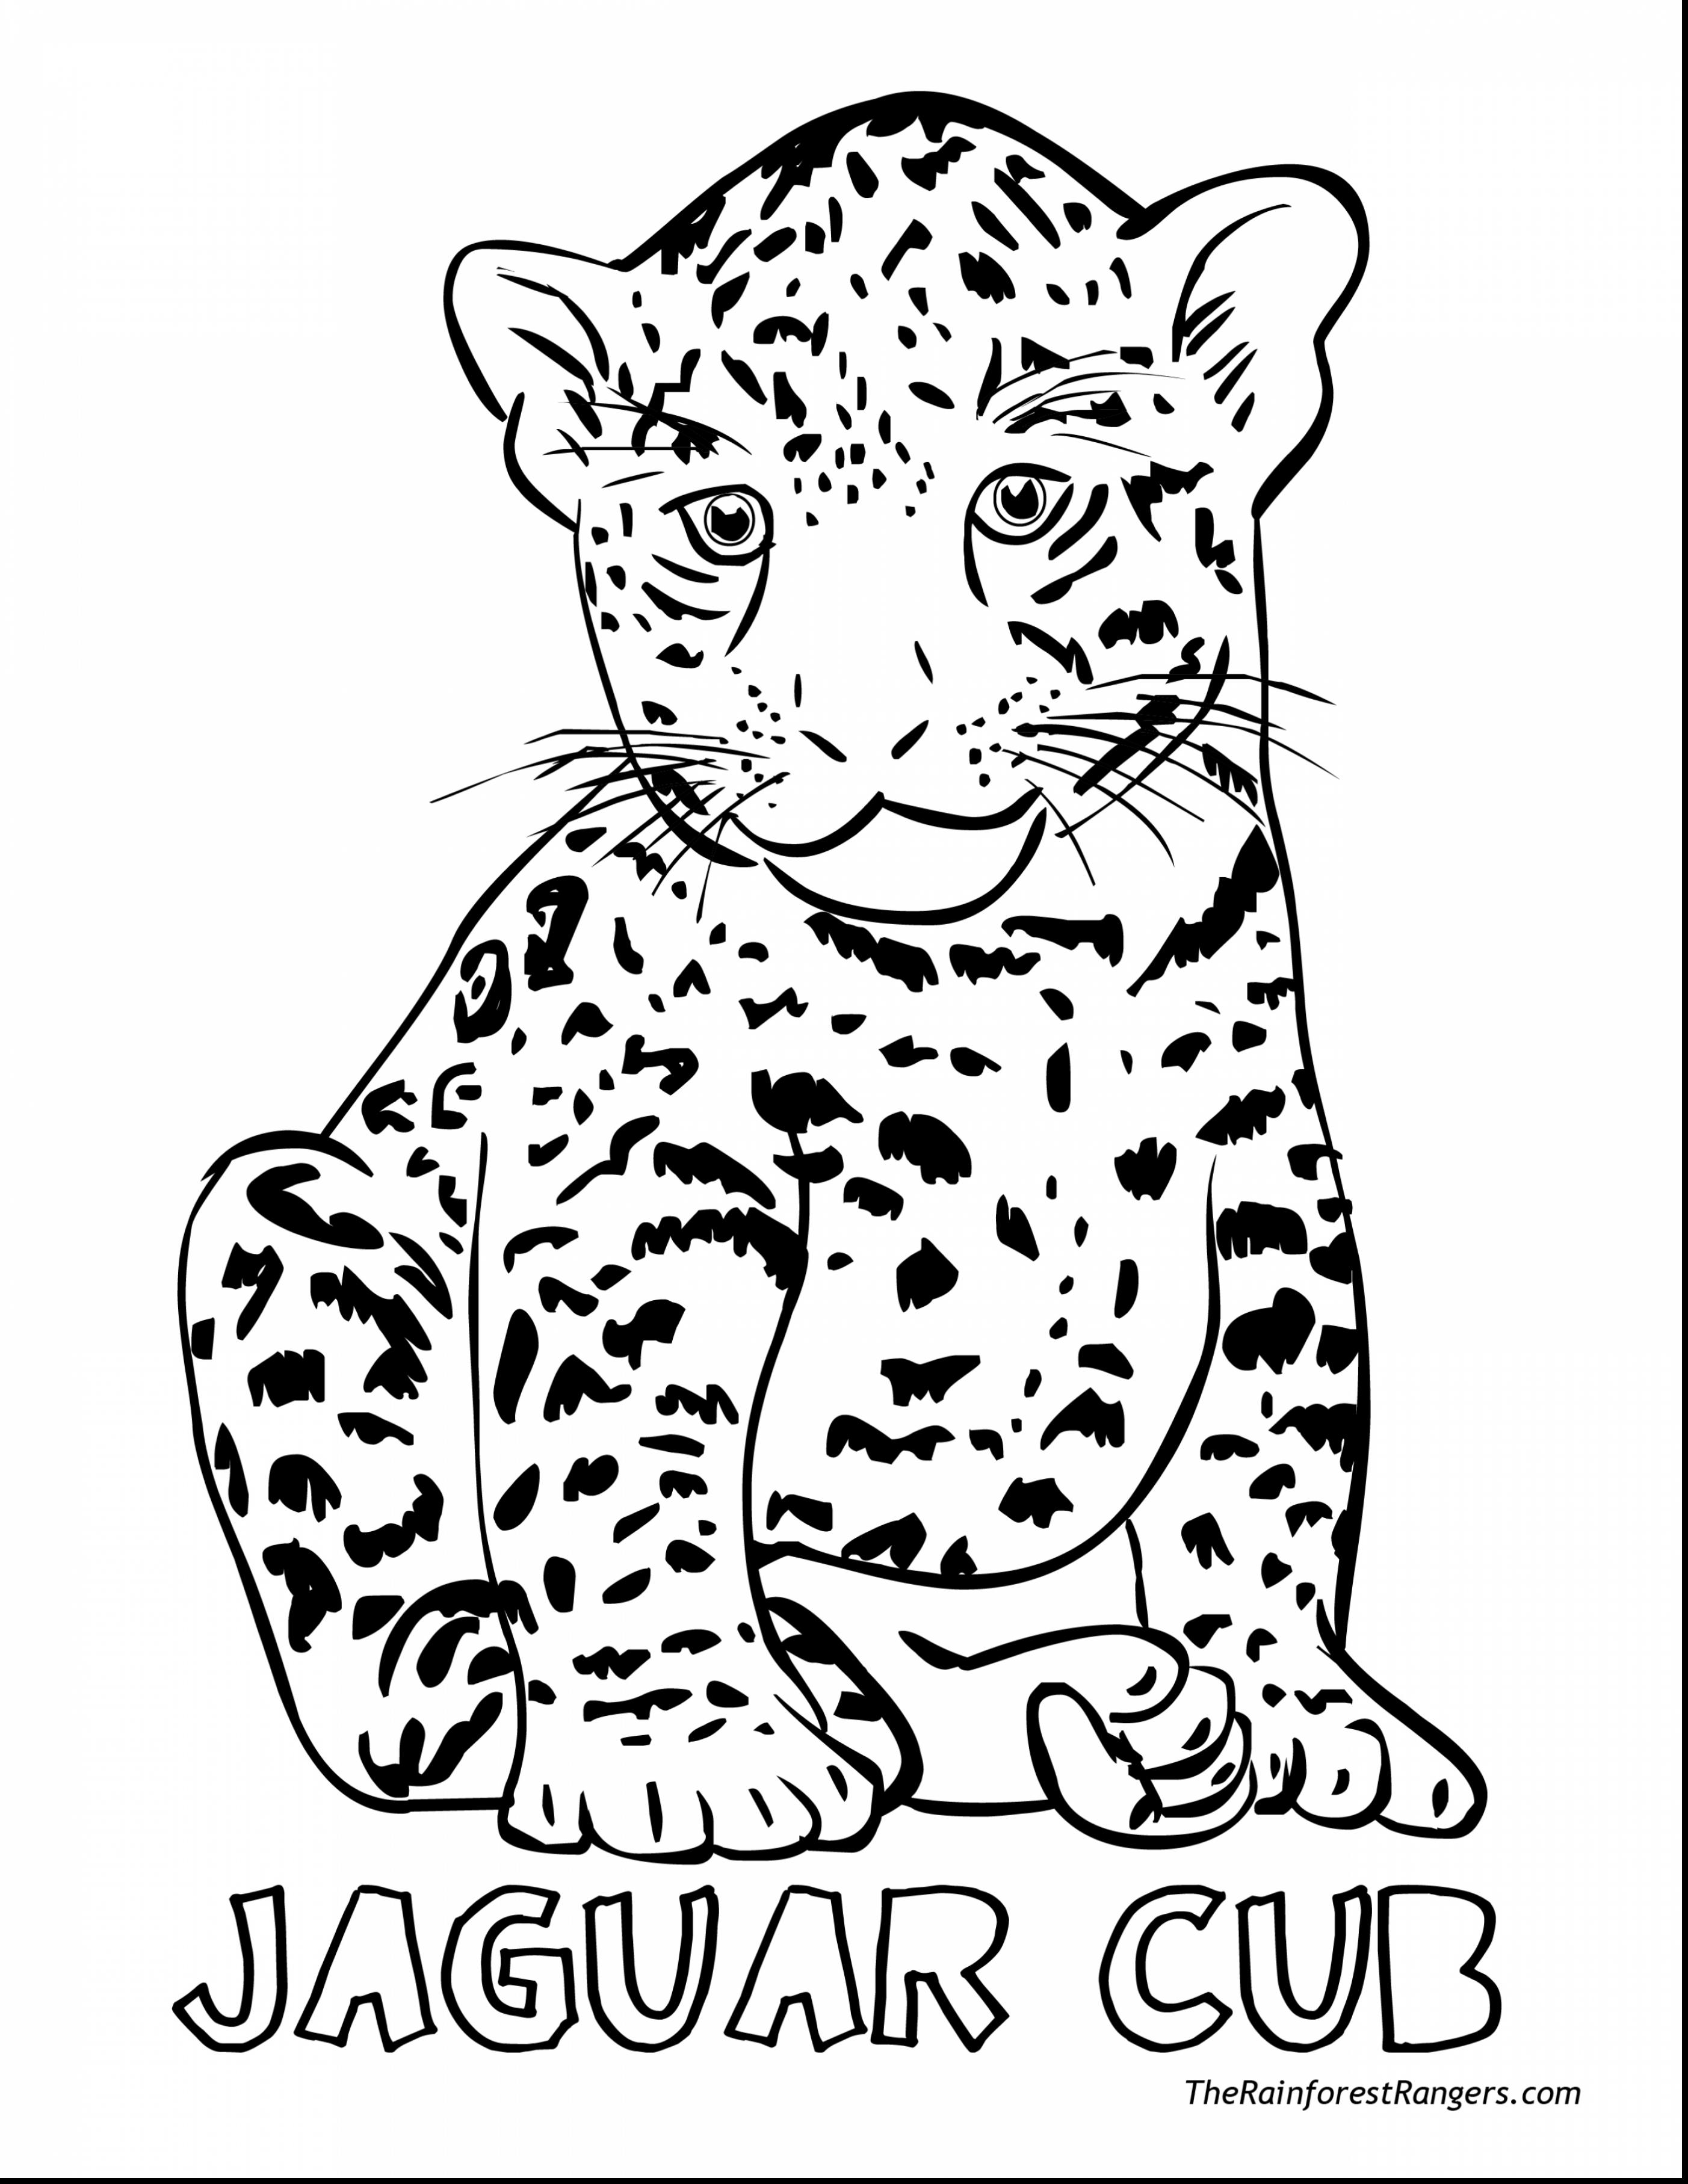 Jaguar Cartoon Drawing At GetDrawings